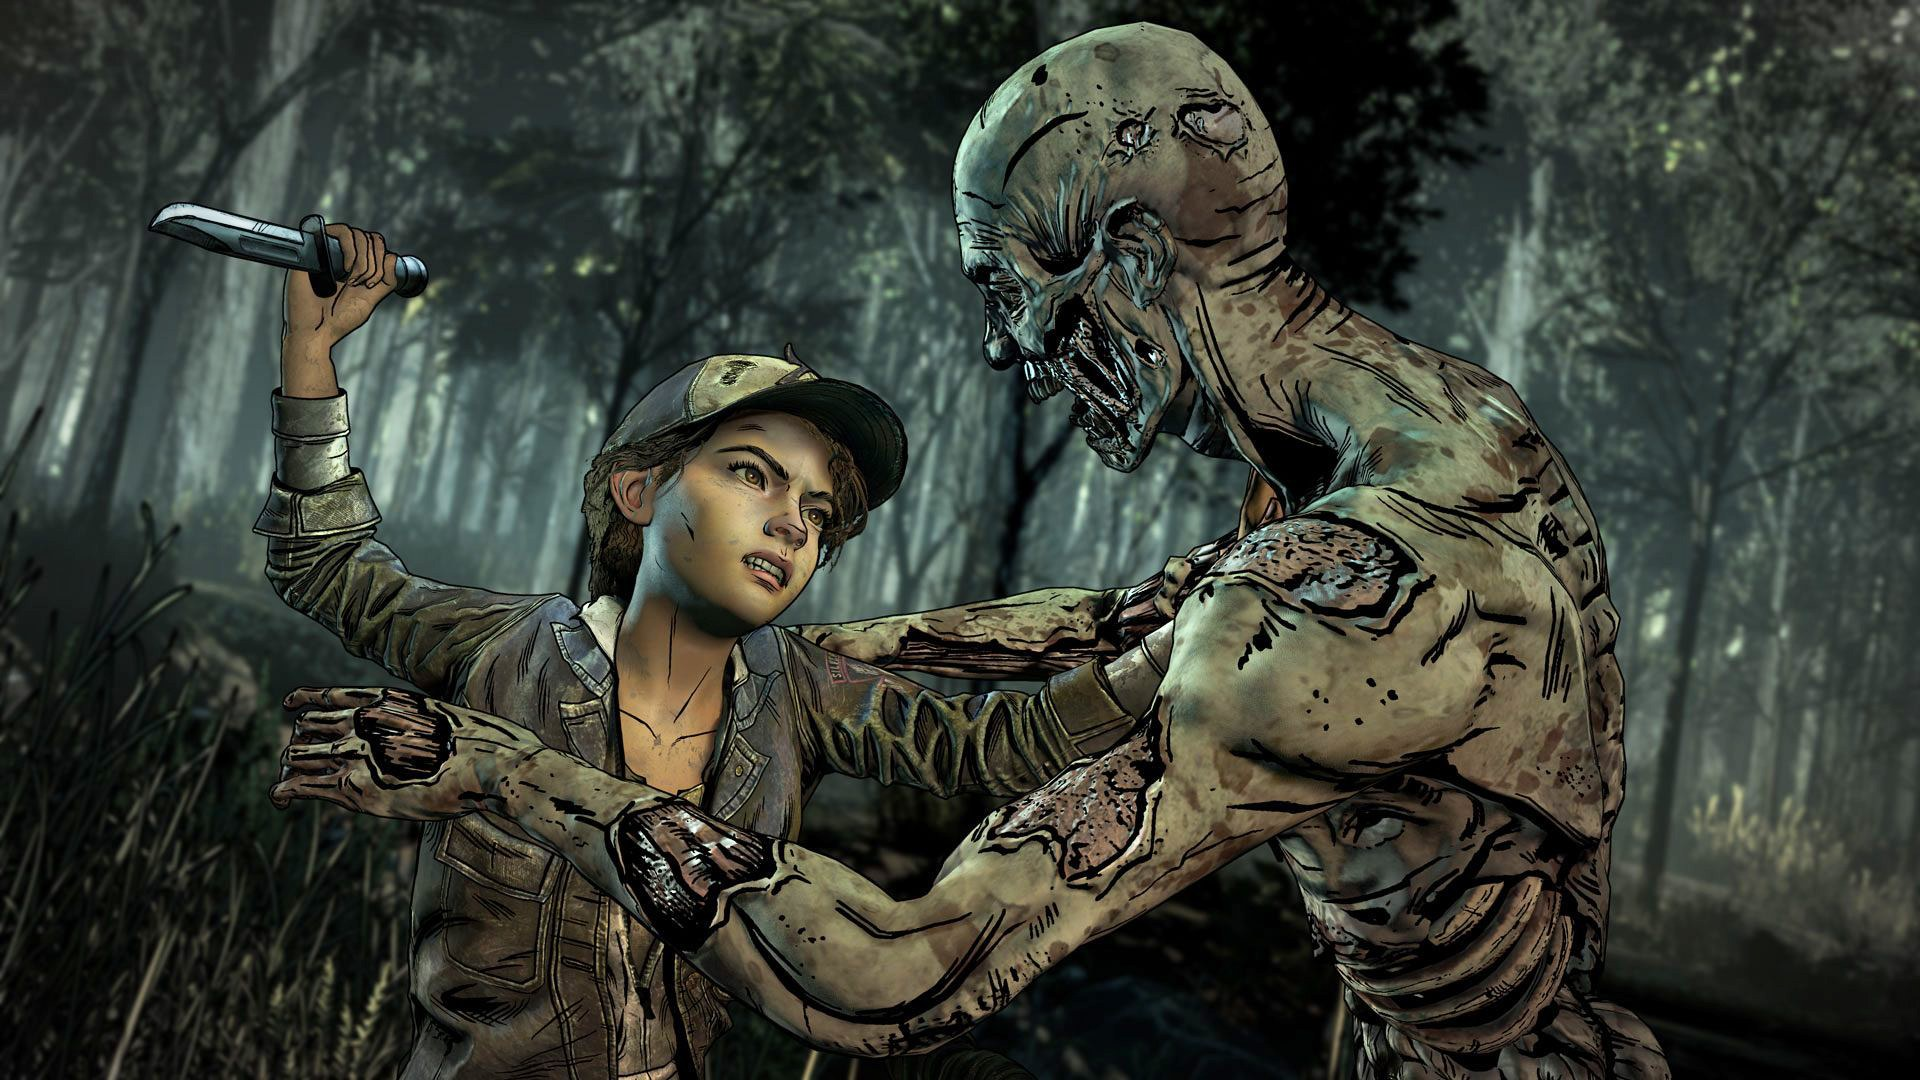 AMC And Smilegate Backed Out Of Funding Talks With Telltale Games